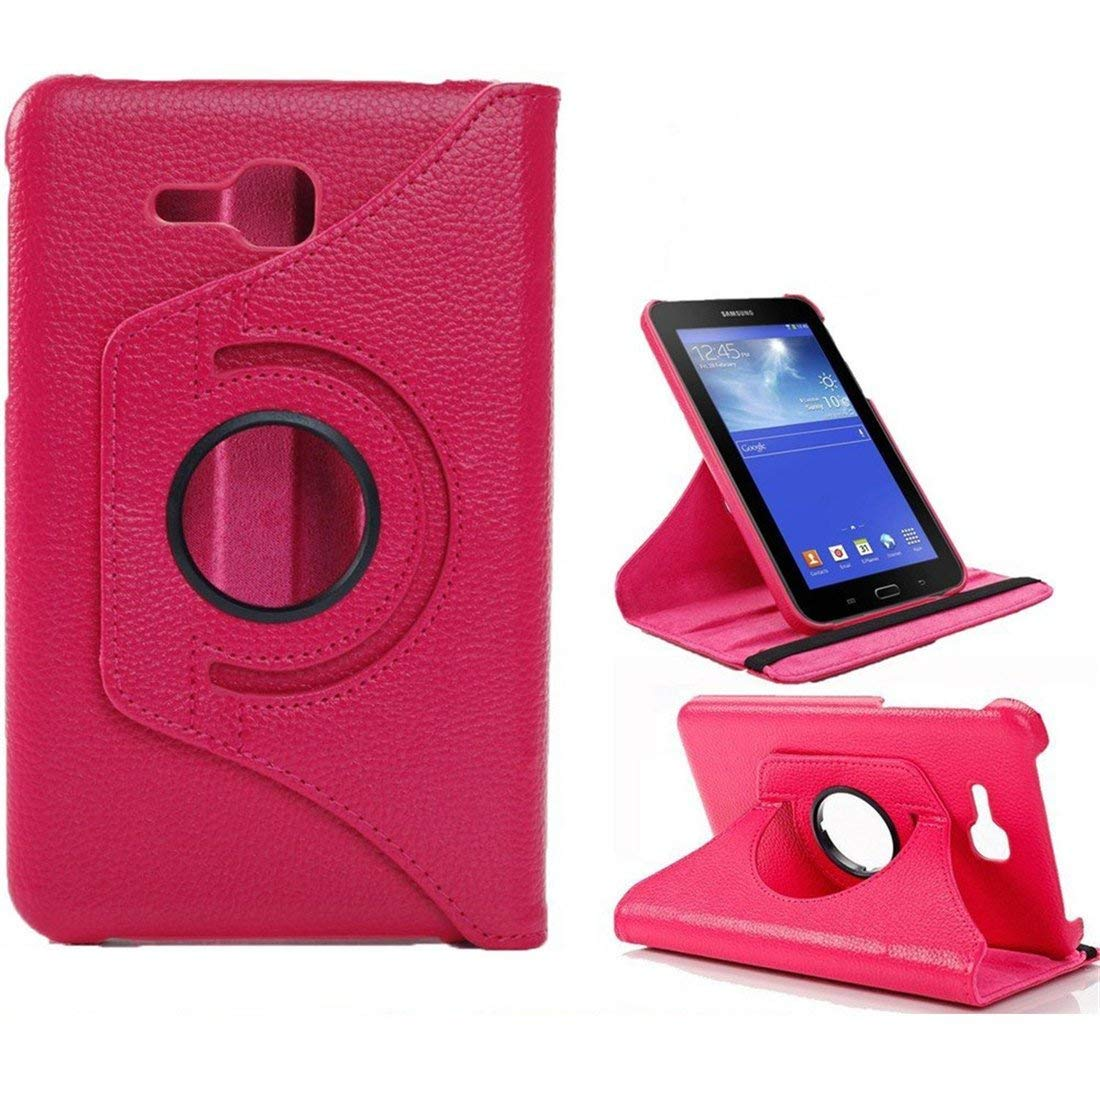 360 Rotation Flip Holder Funda For Galaxy Tab 3 7